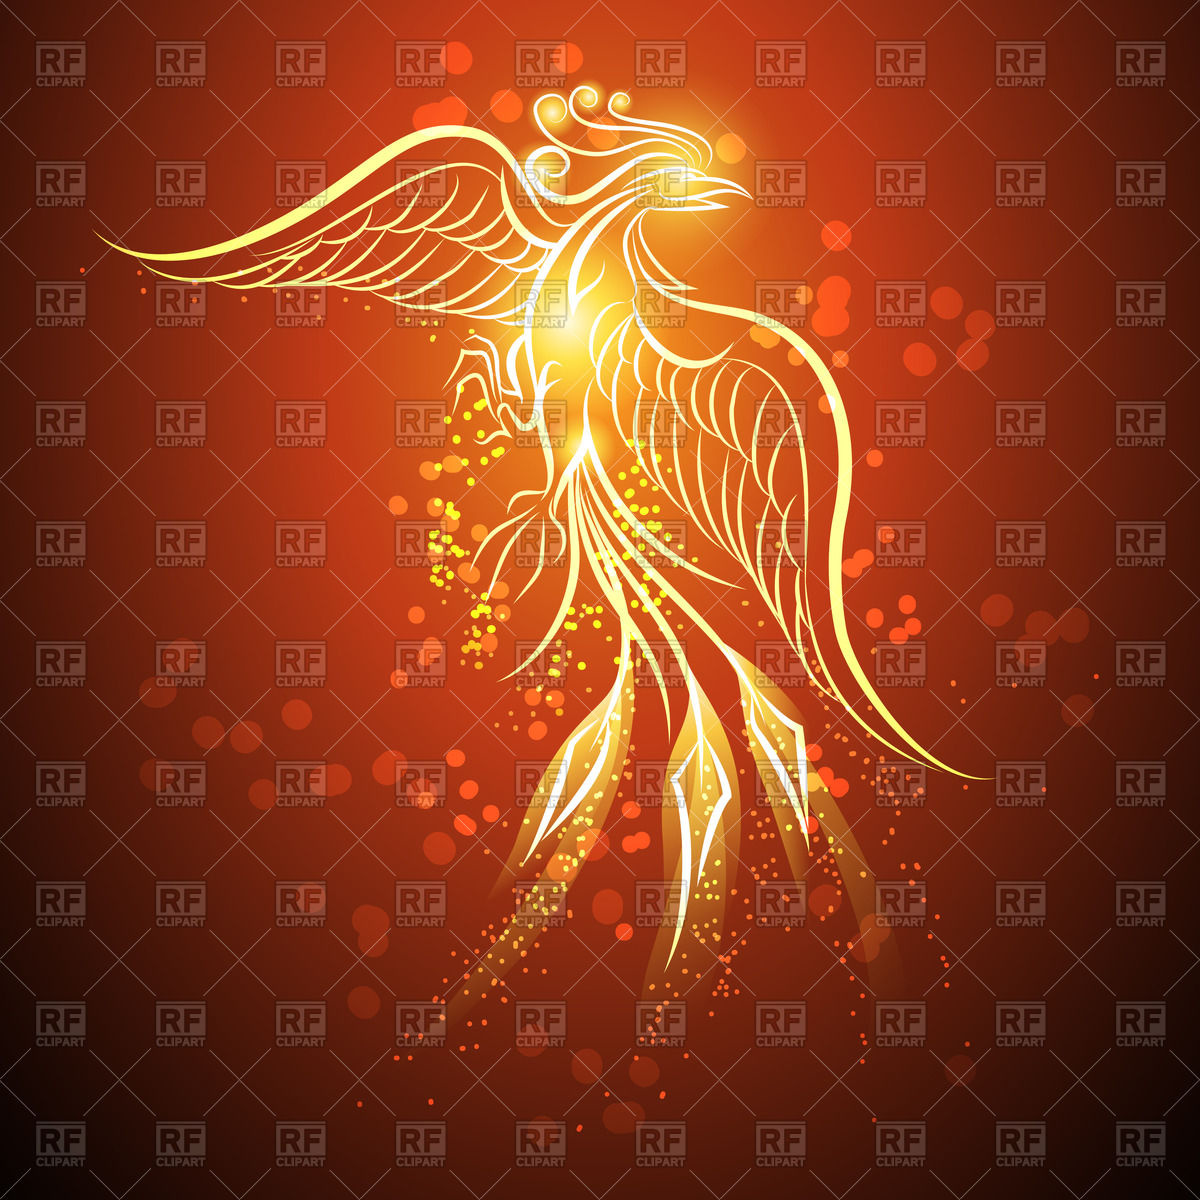 Outline of phoenix on red background Vector Image #60542.